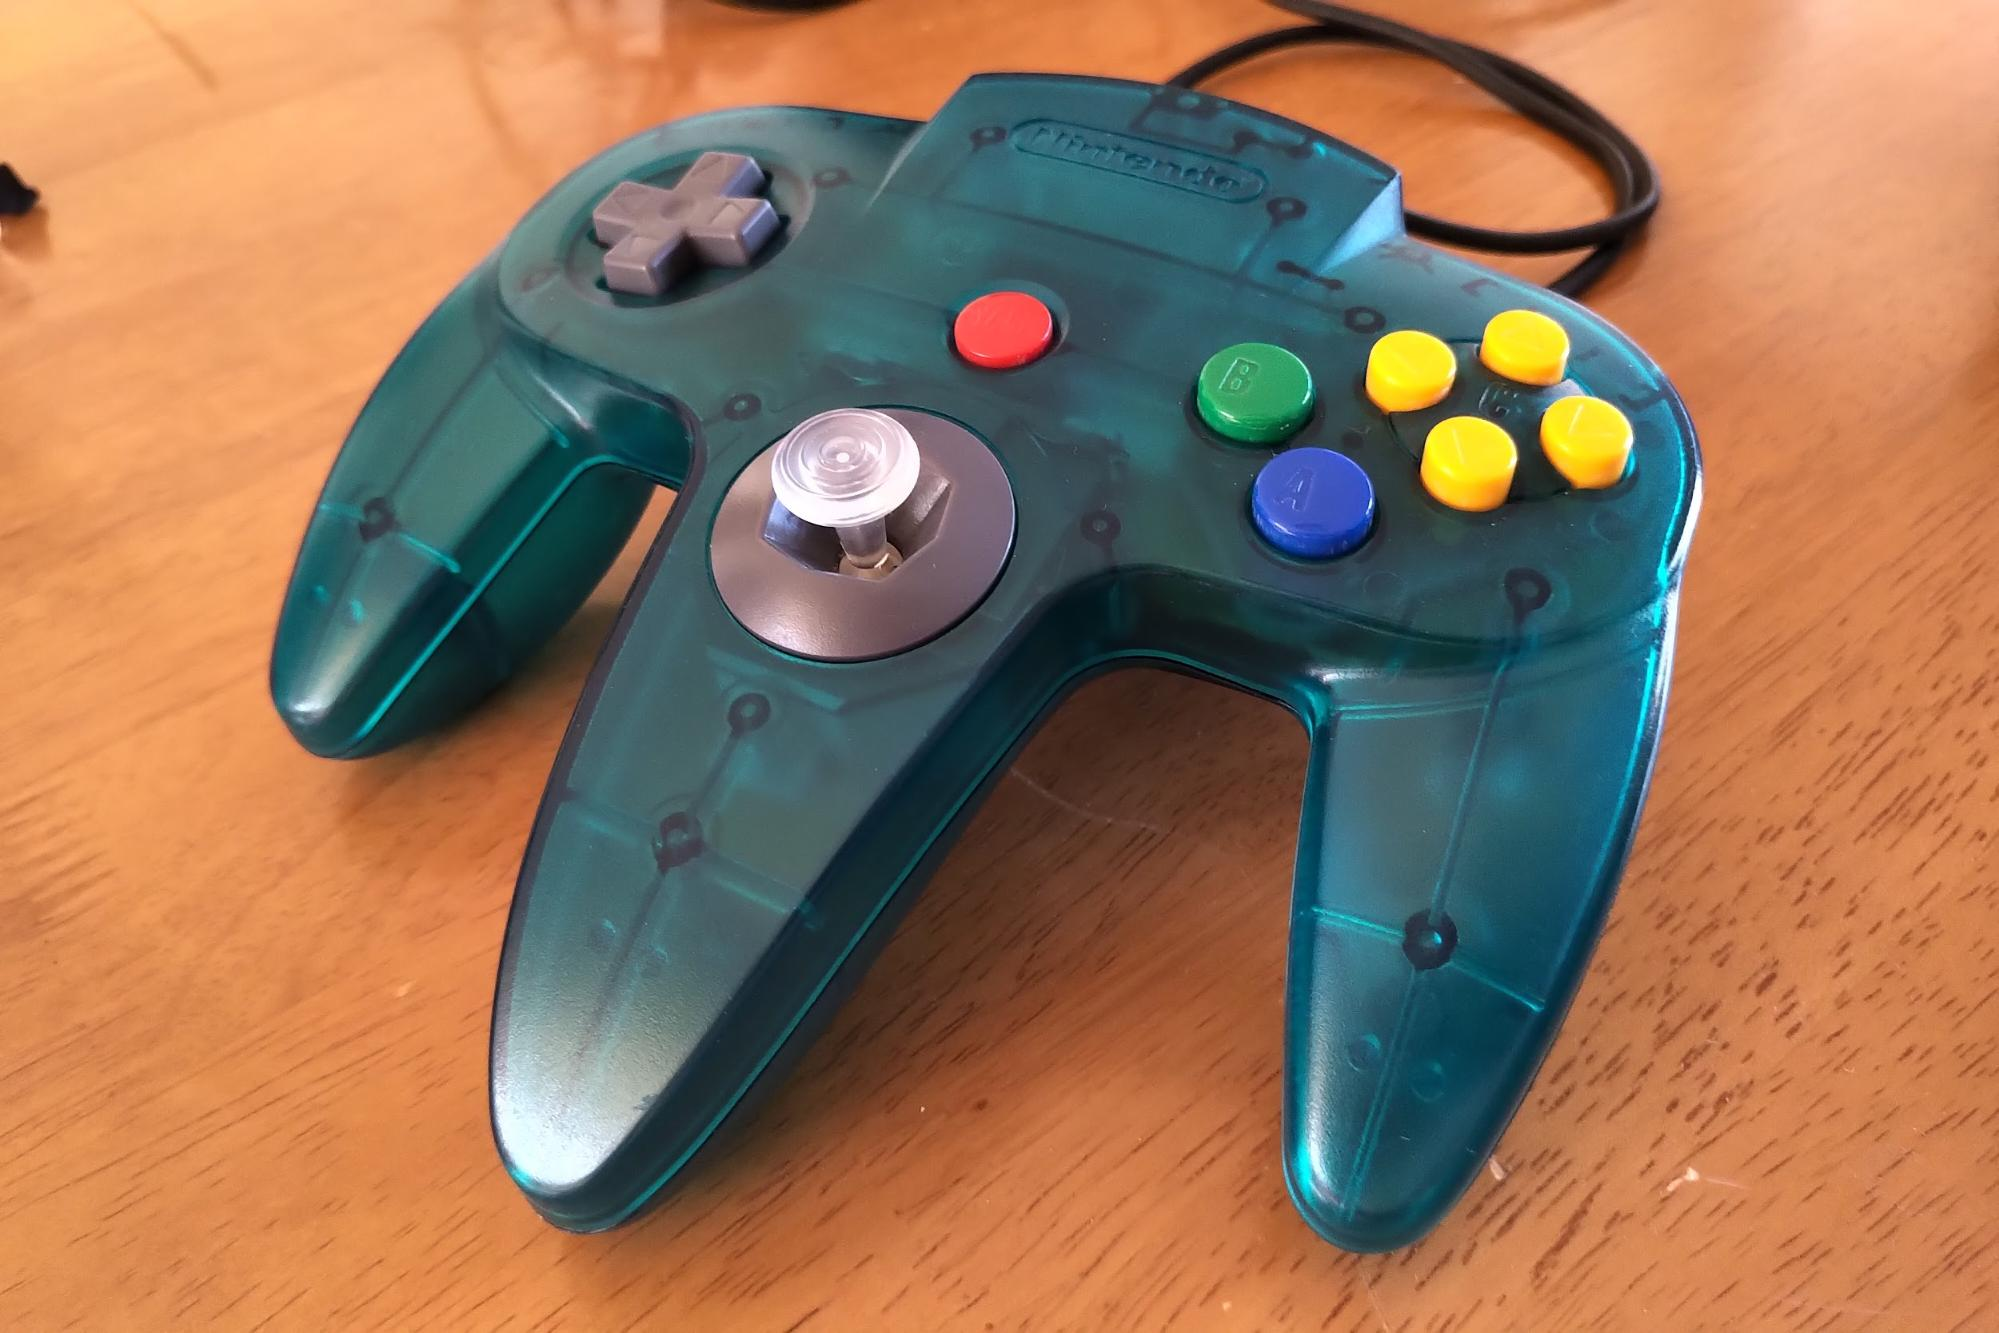 Great Upgrades for a Tired N64 Controller